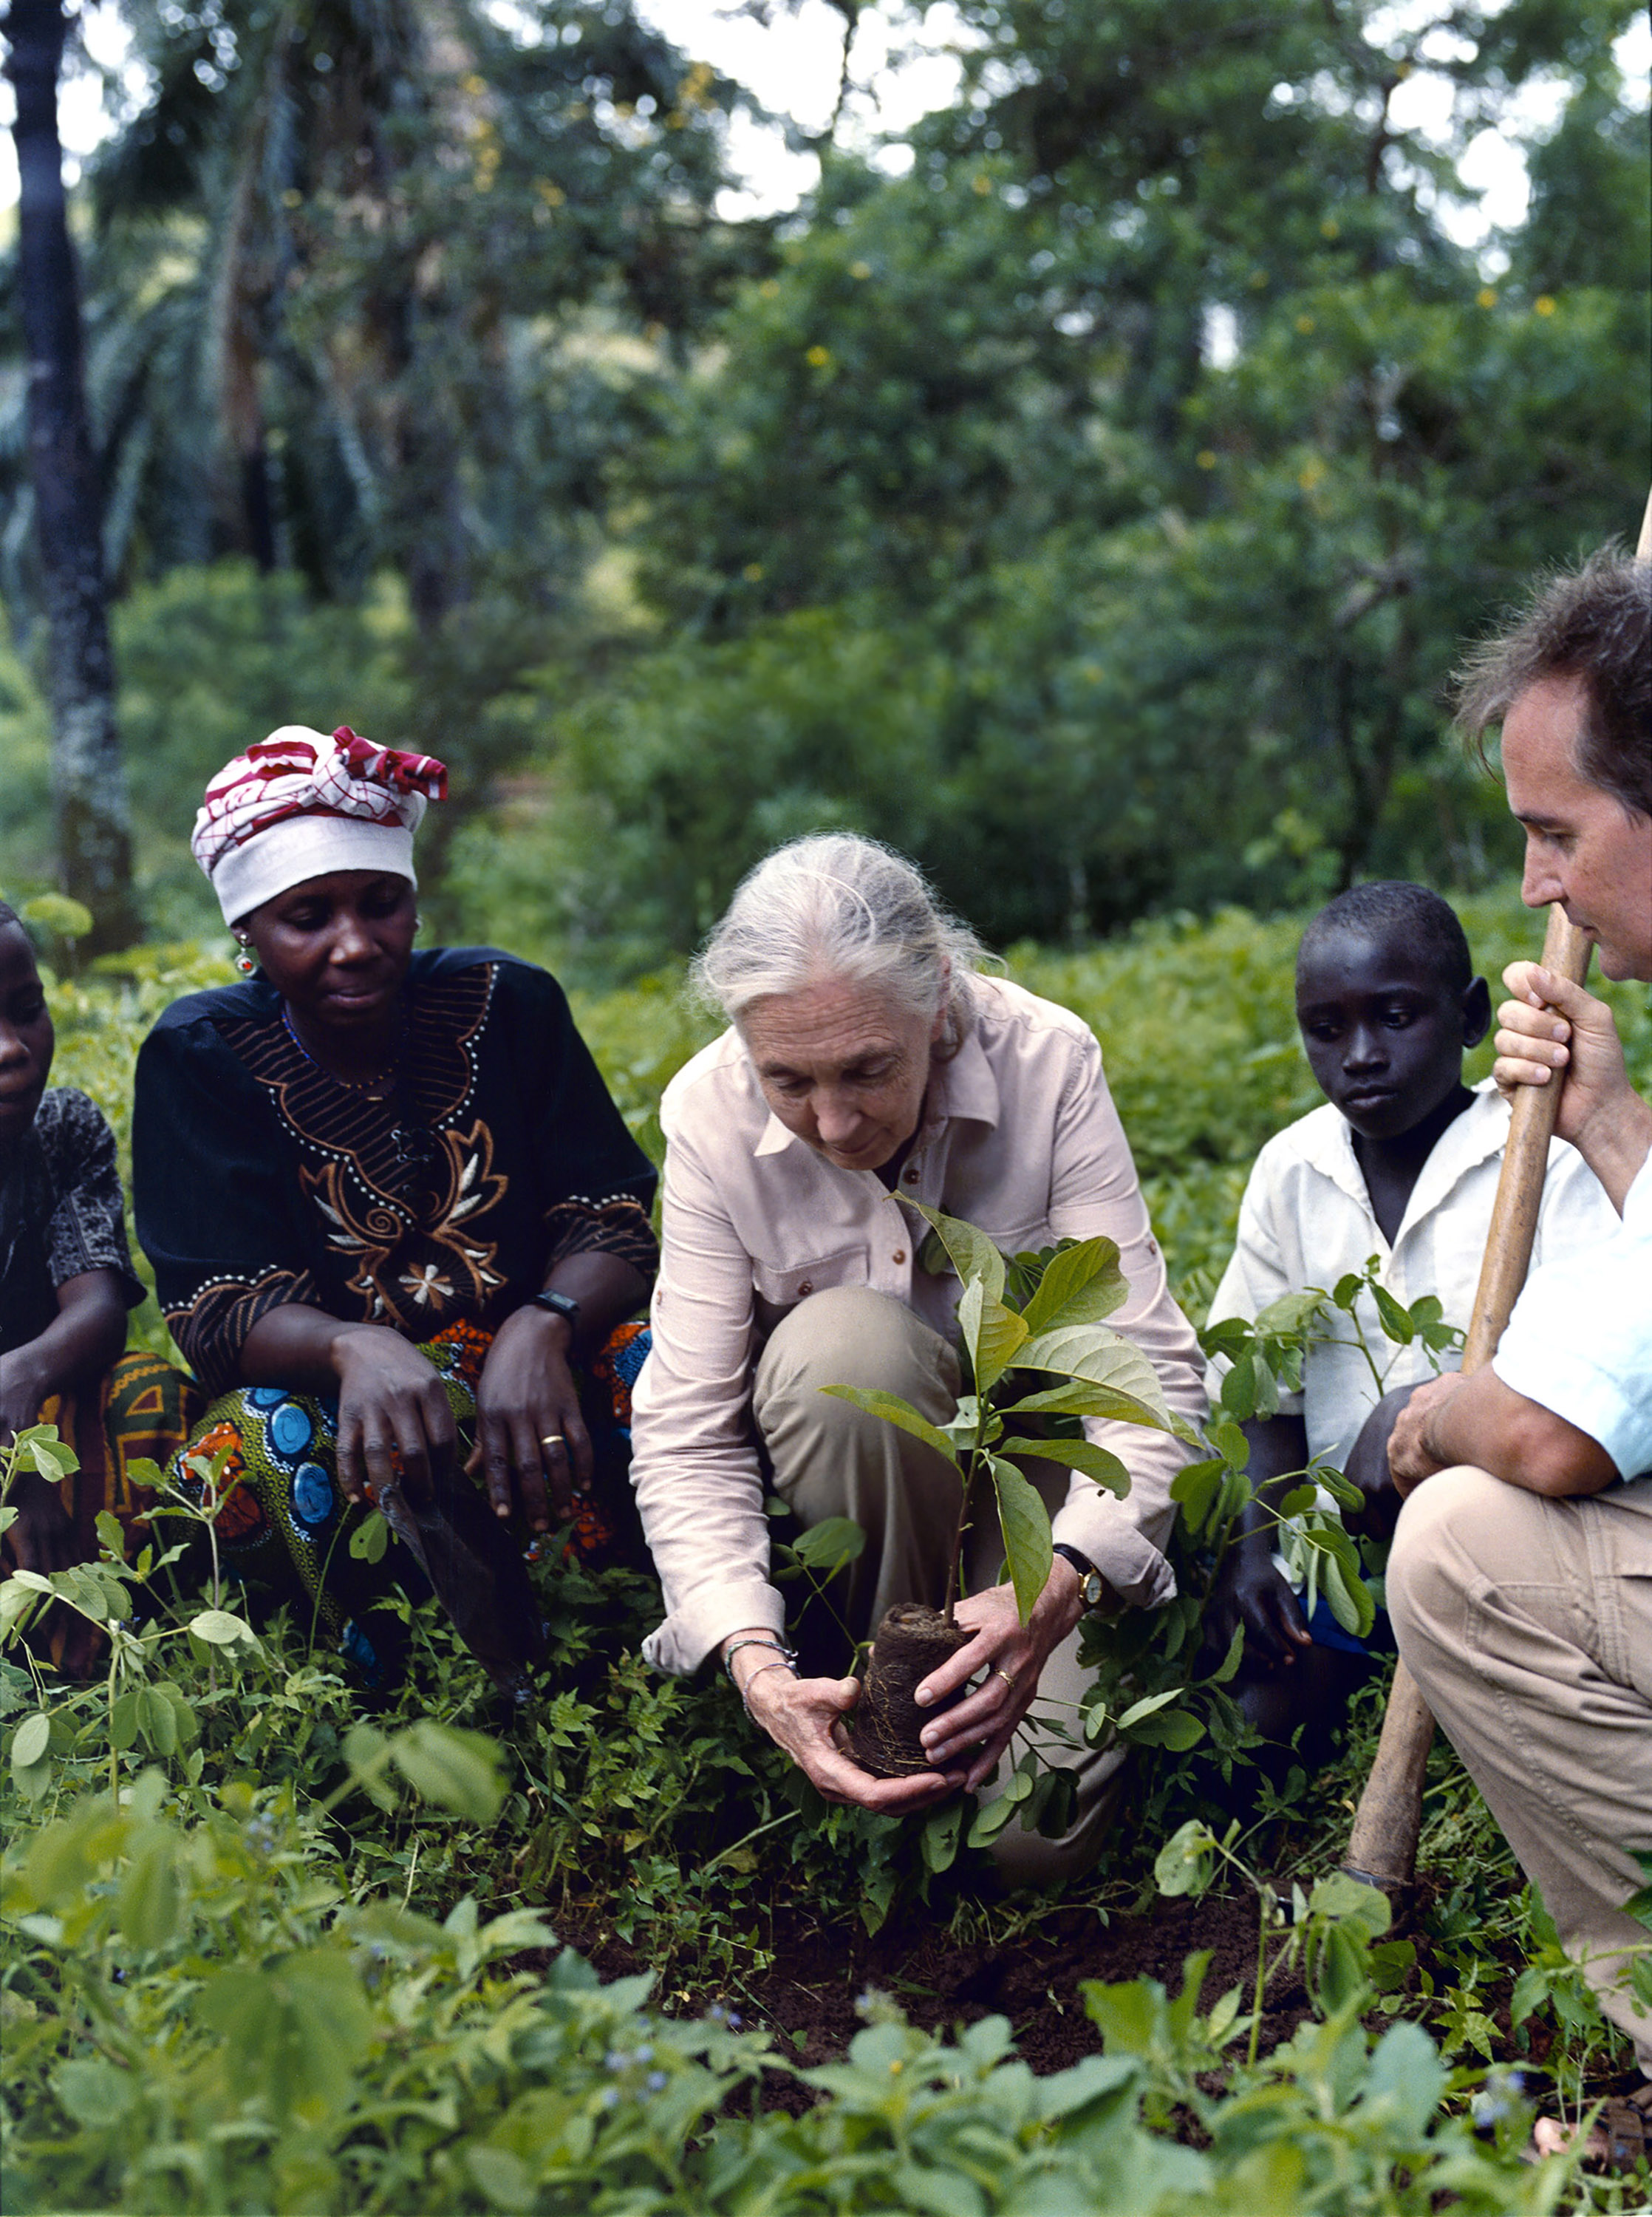 Jane Goodall plants a tree seedling in Gombe National Park. With her is son Grub. GANT photo shoot.